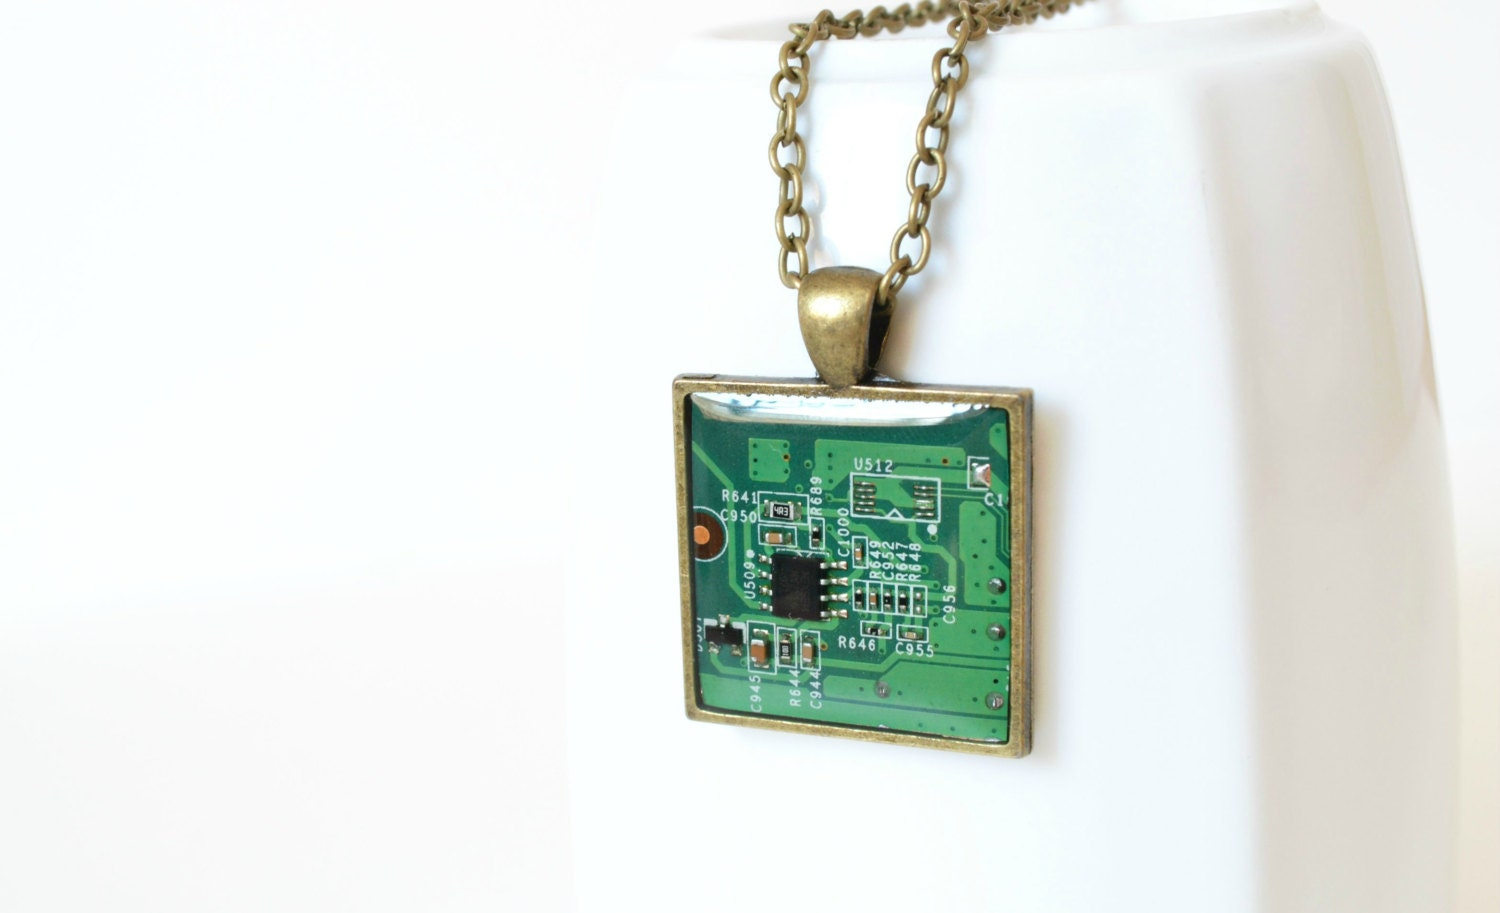 Nerdy Necklace - Green Necklace - Circuit Board Necklace - Computer Jewelry - Geekery Necklace - Upcycled Geometric Necklace - HardResols